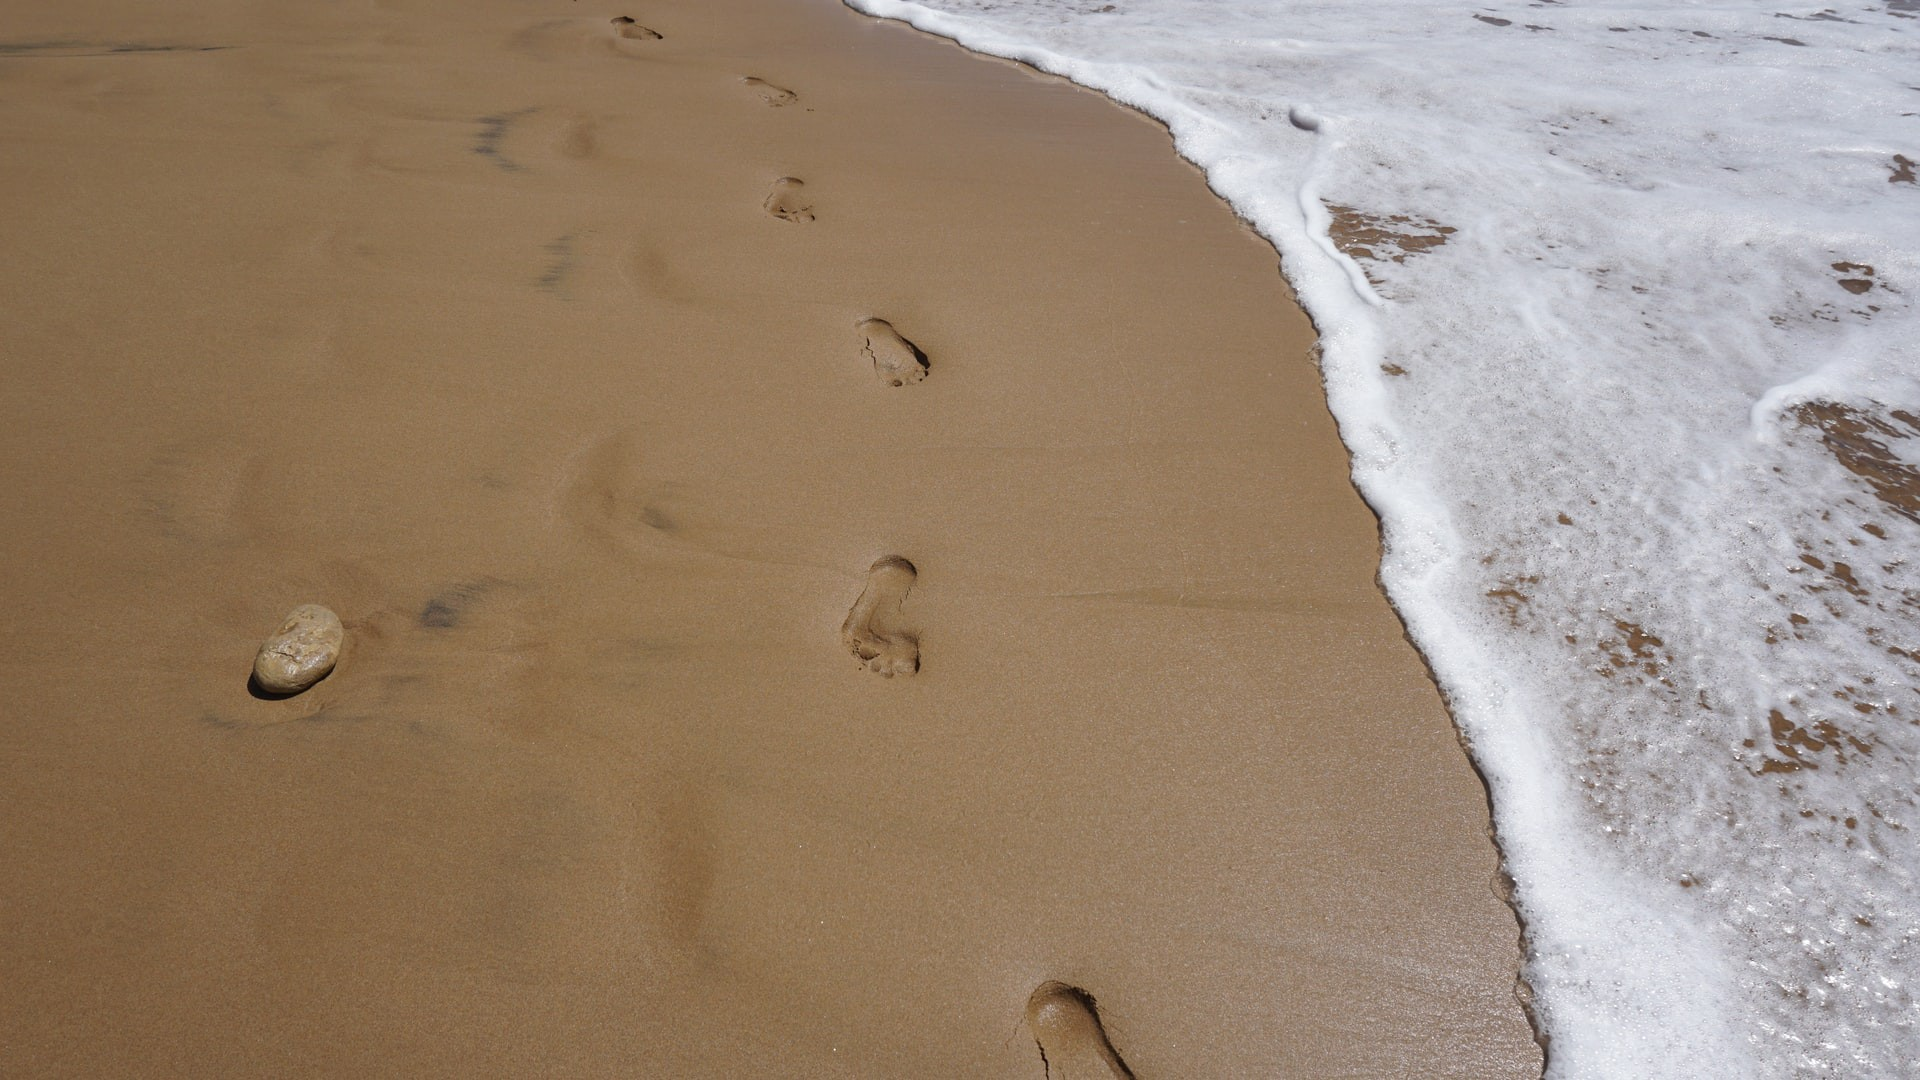 Colour photograph is human barefoot footprints in wet sand at the beach next to the incoming tide.